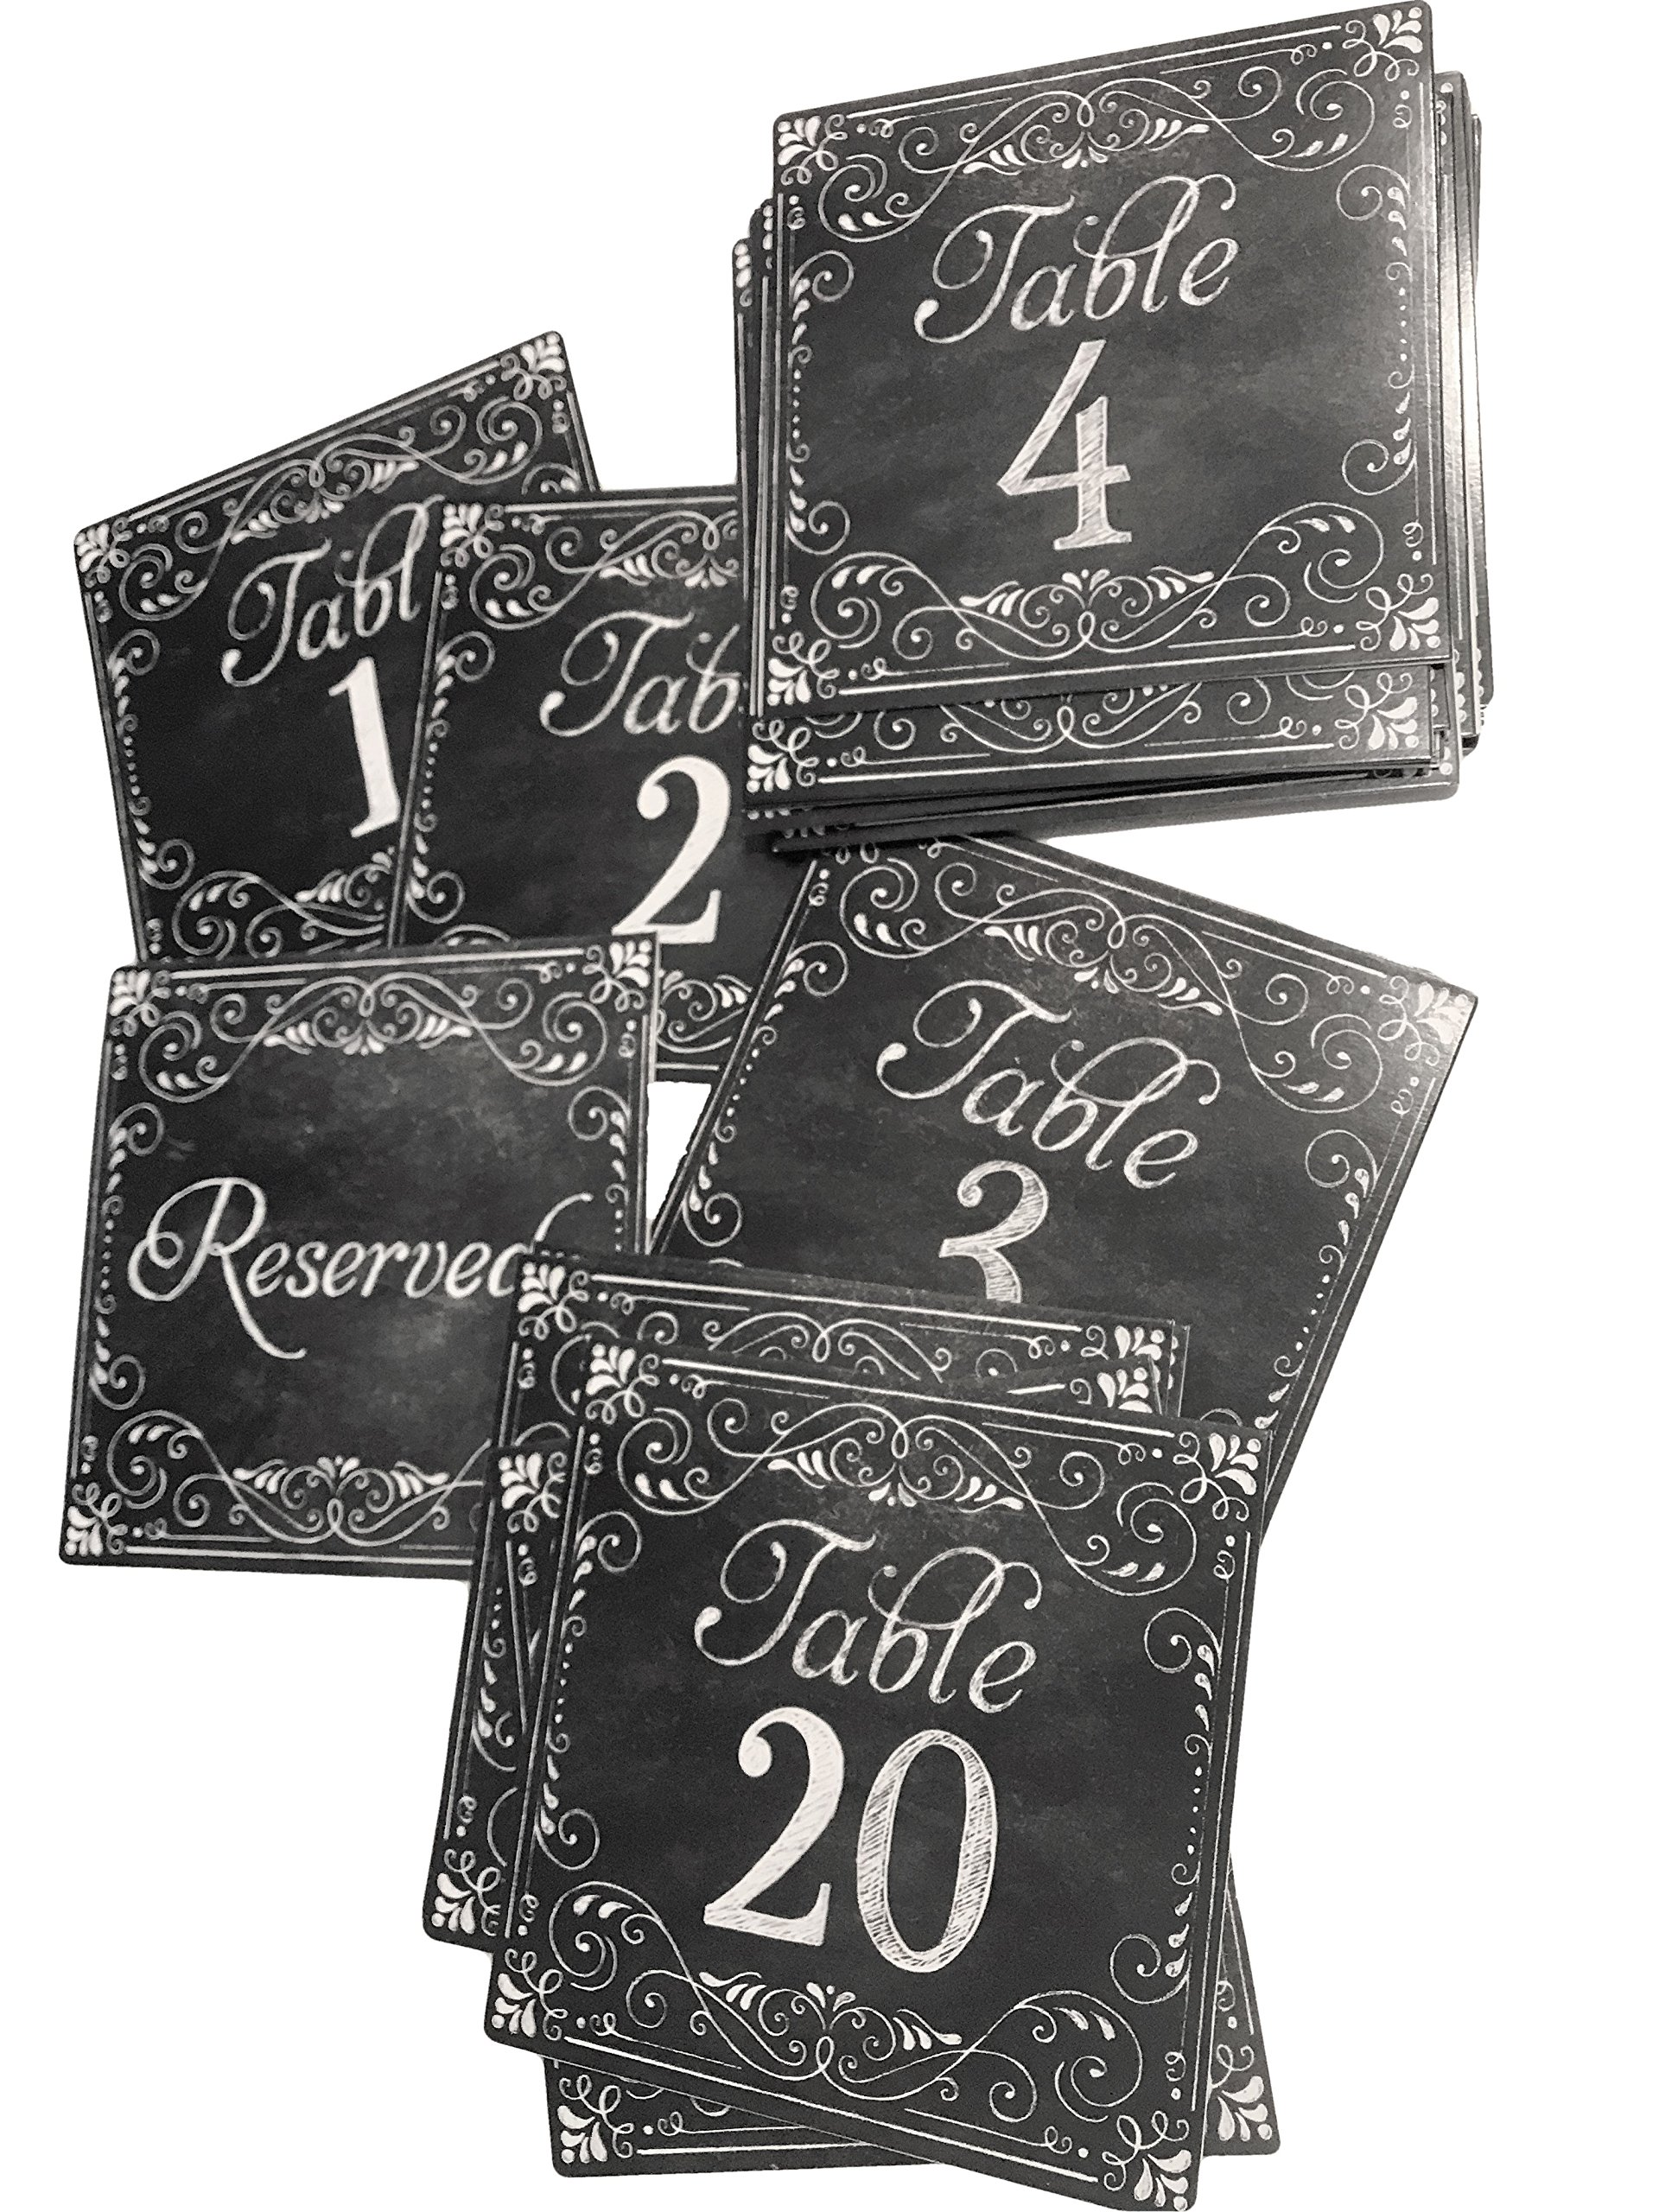 Chalk Board Tent Table Number Cards, Printed on Text, 1-20 plus 4 Reserved Cards by His & Hers